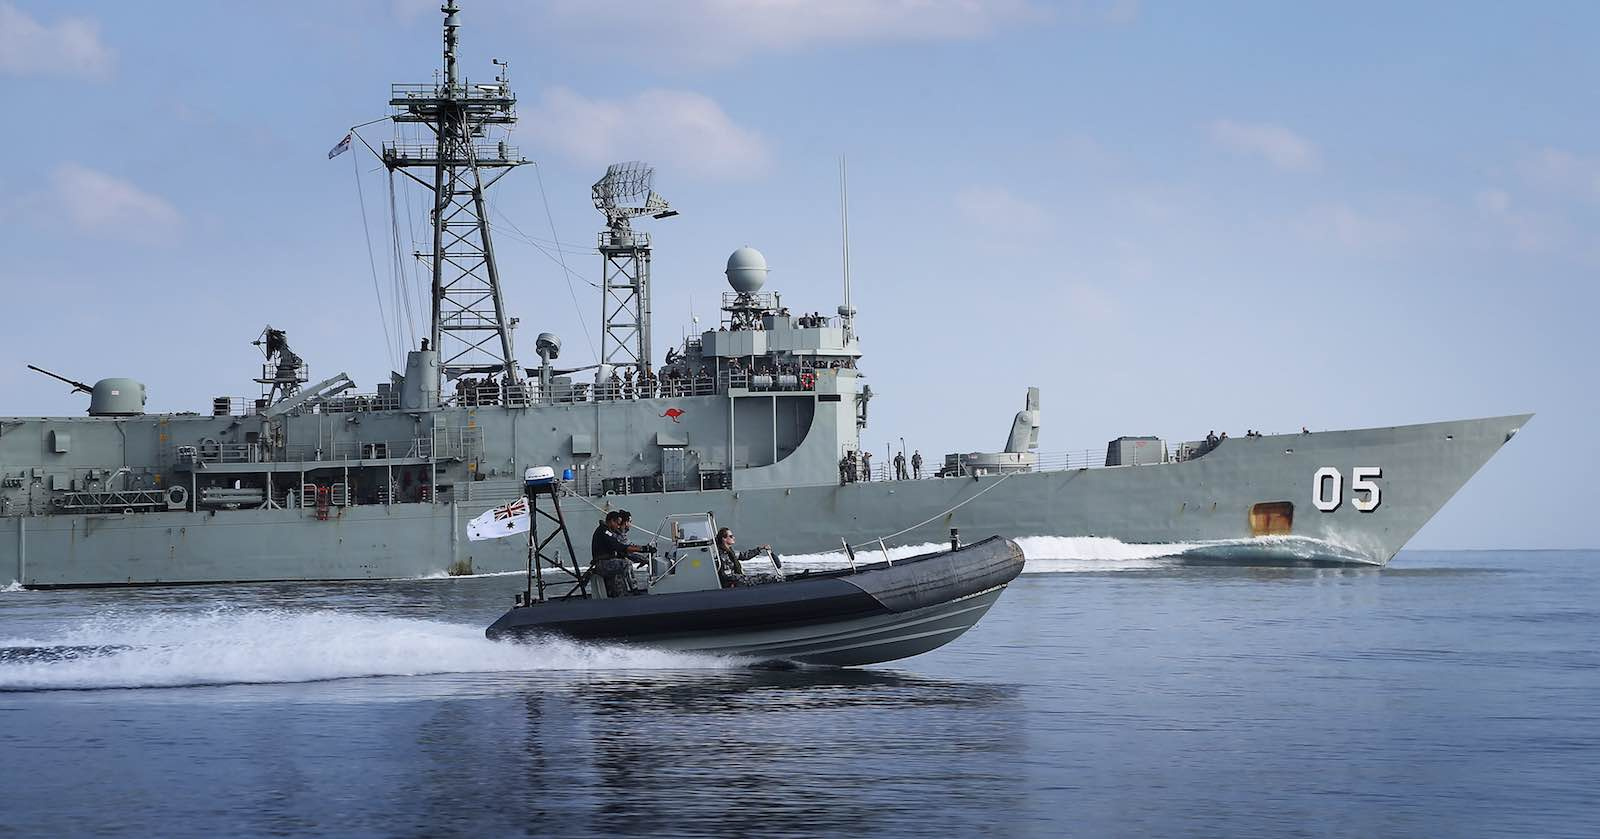 HMAS Melbourne during a deployment to the Persian Gulf in 2016 (Photo: Department of Defence)